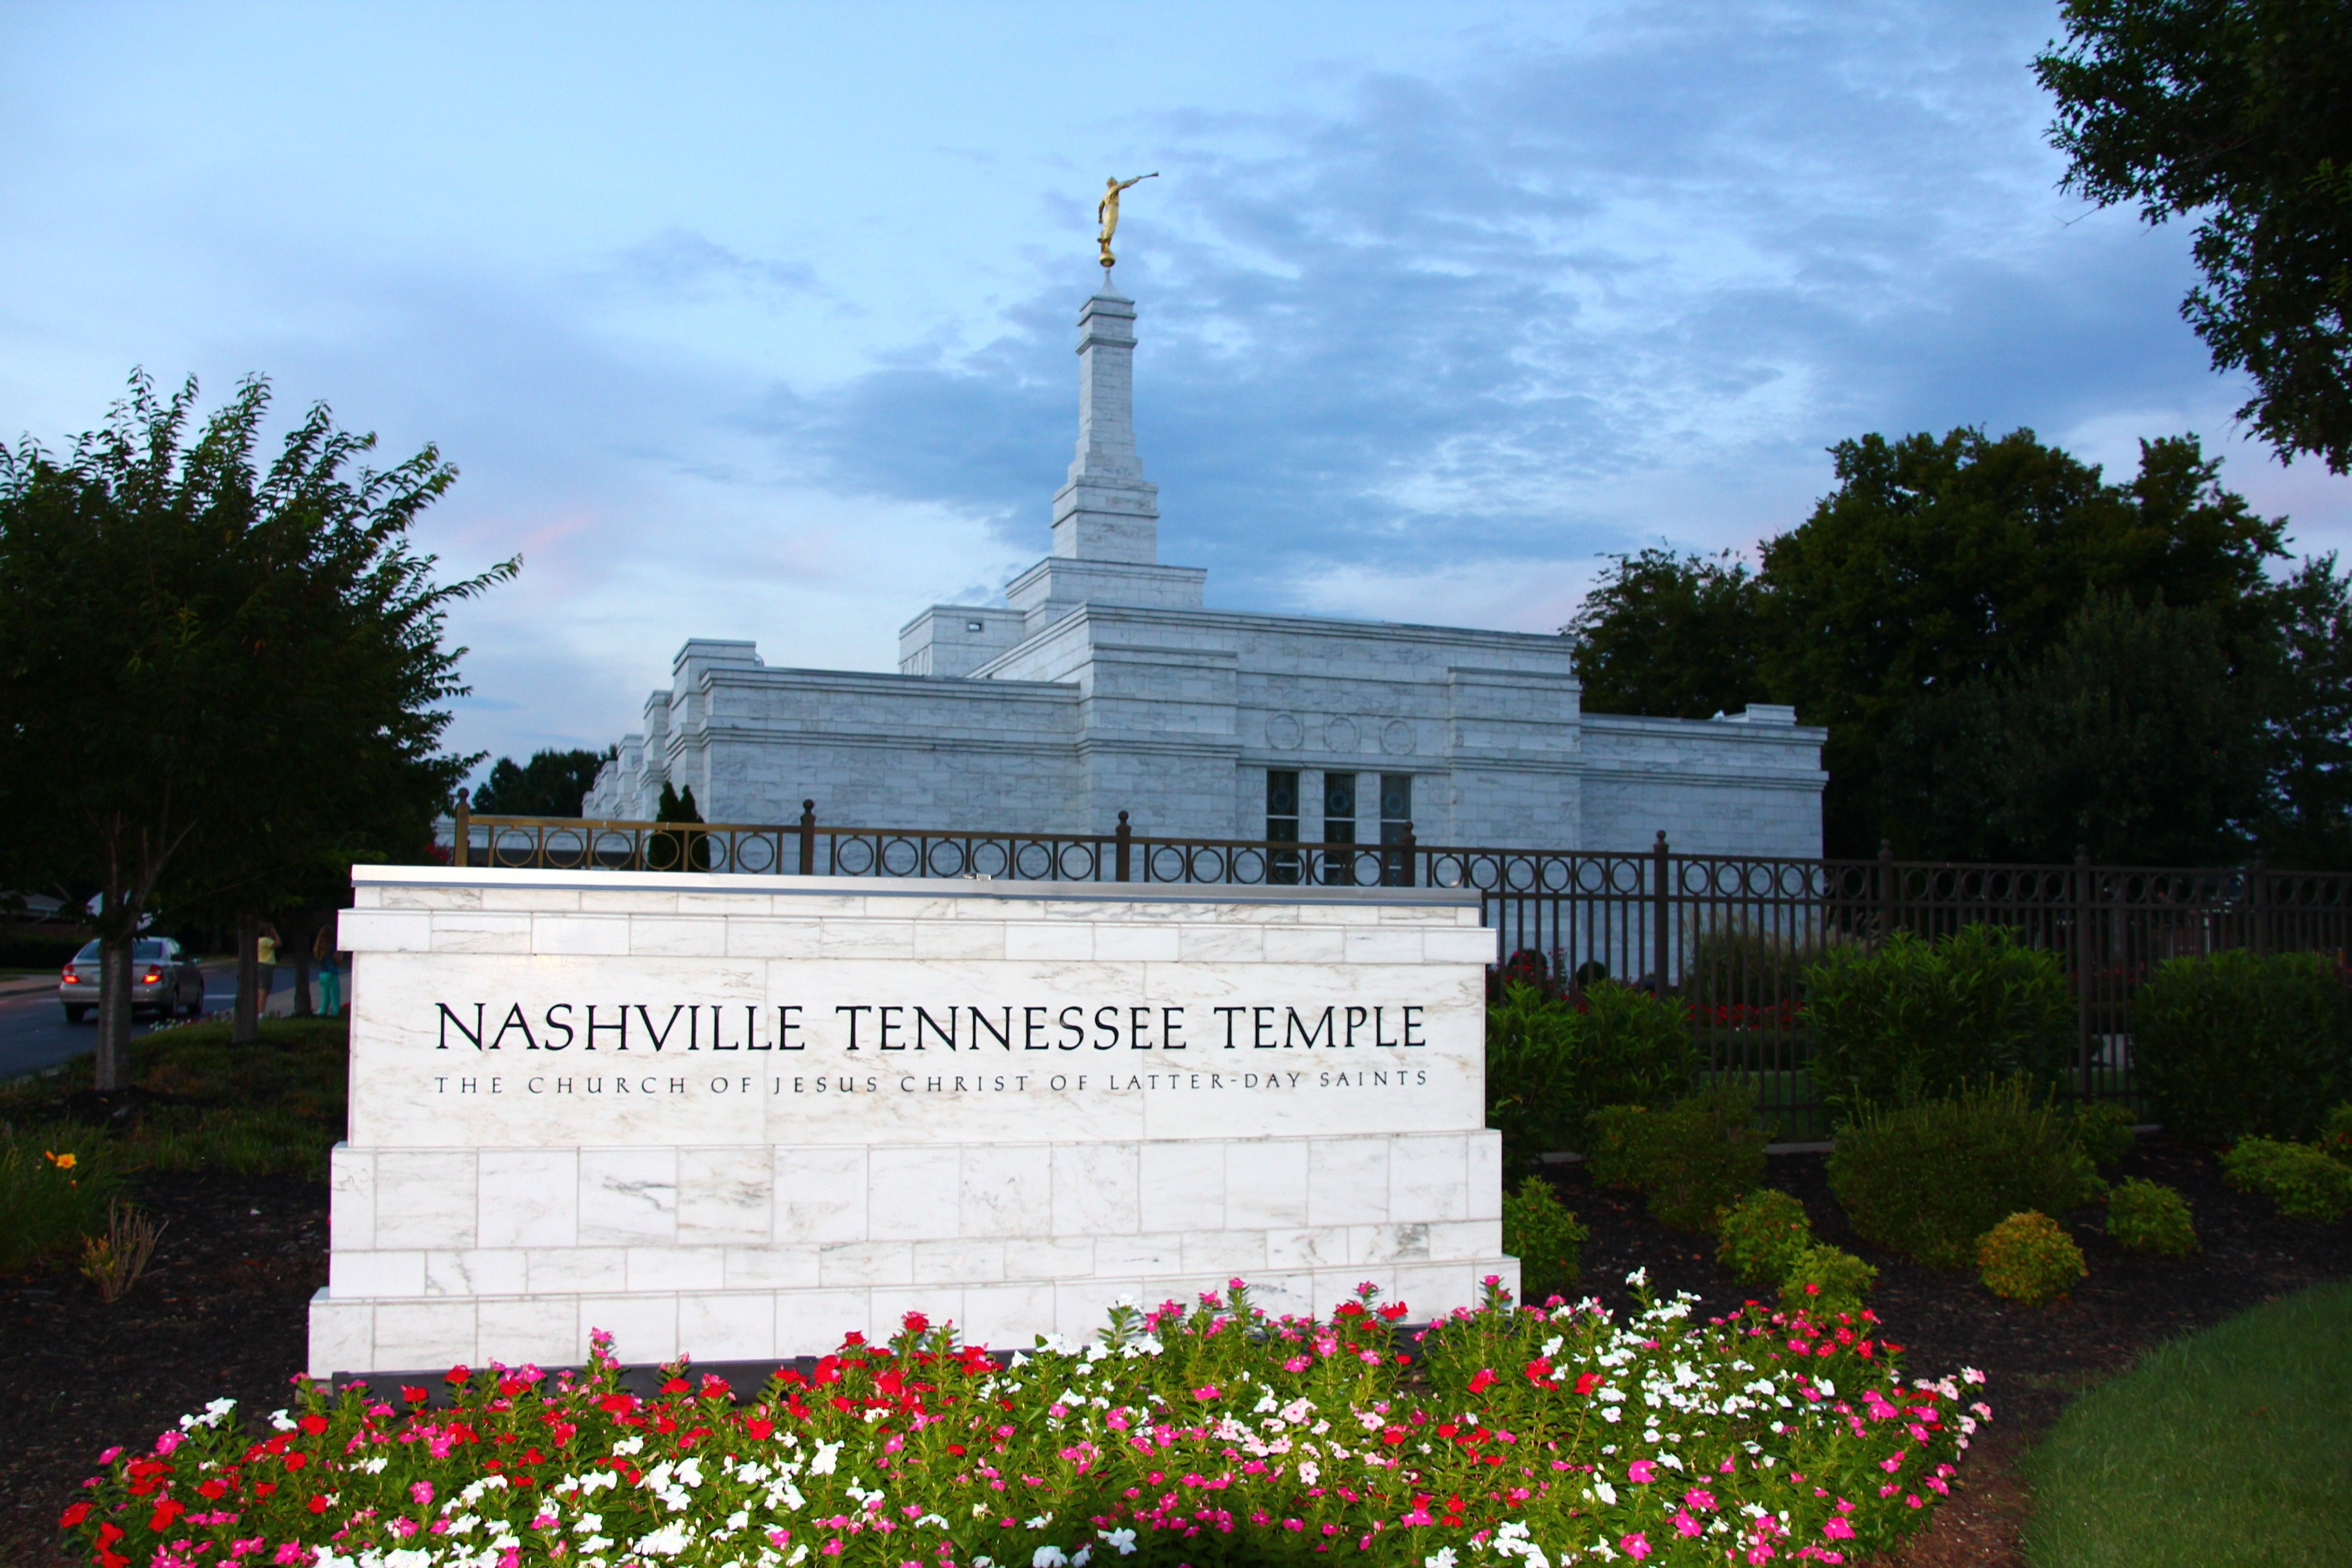 The Nashville Tennessee Temple name sign, including scenery and the exterior of the temple.